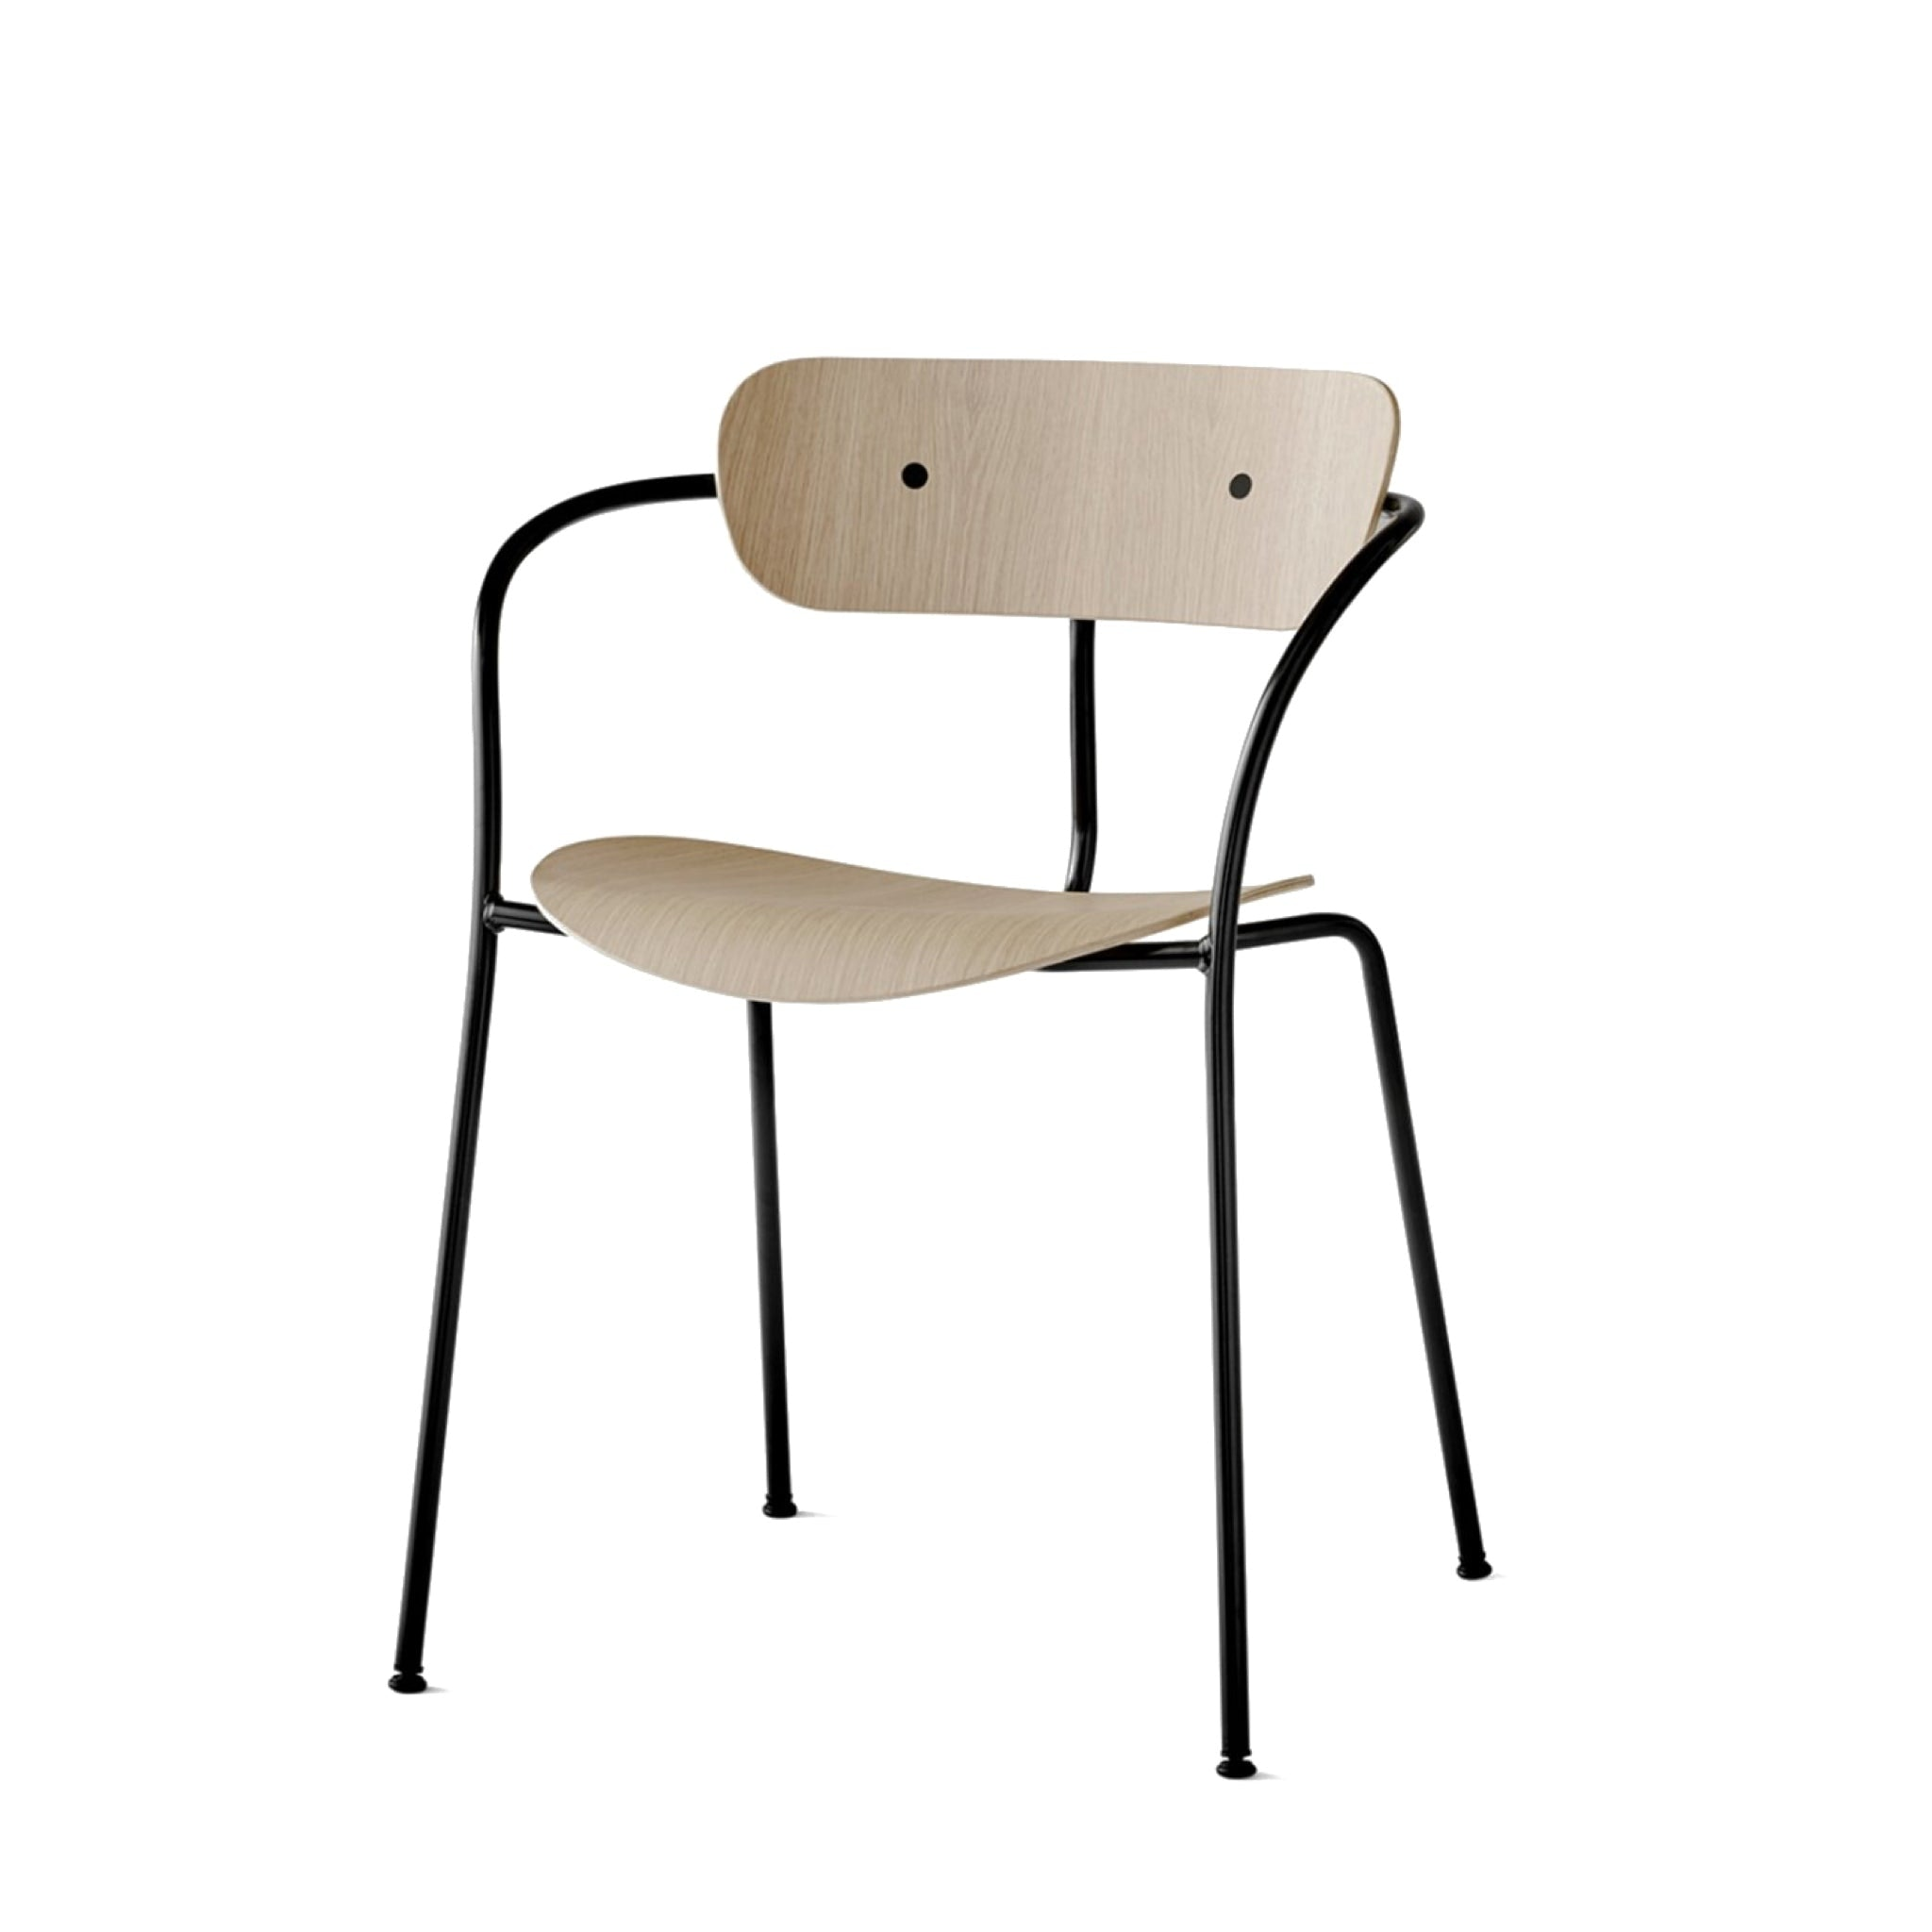 AV2 Pavilion Chair by Tradition